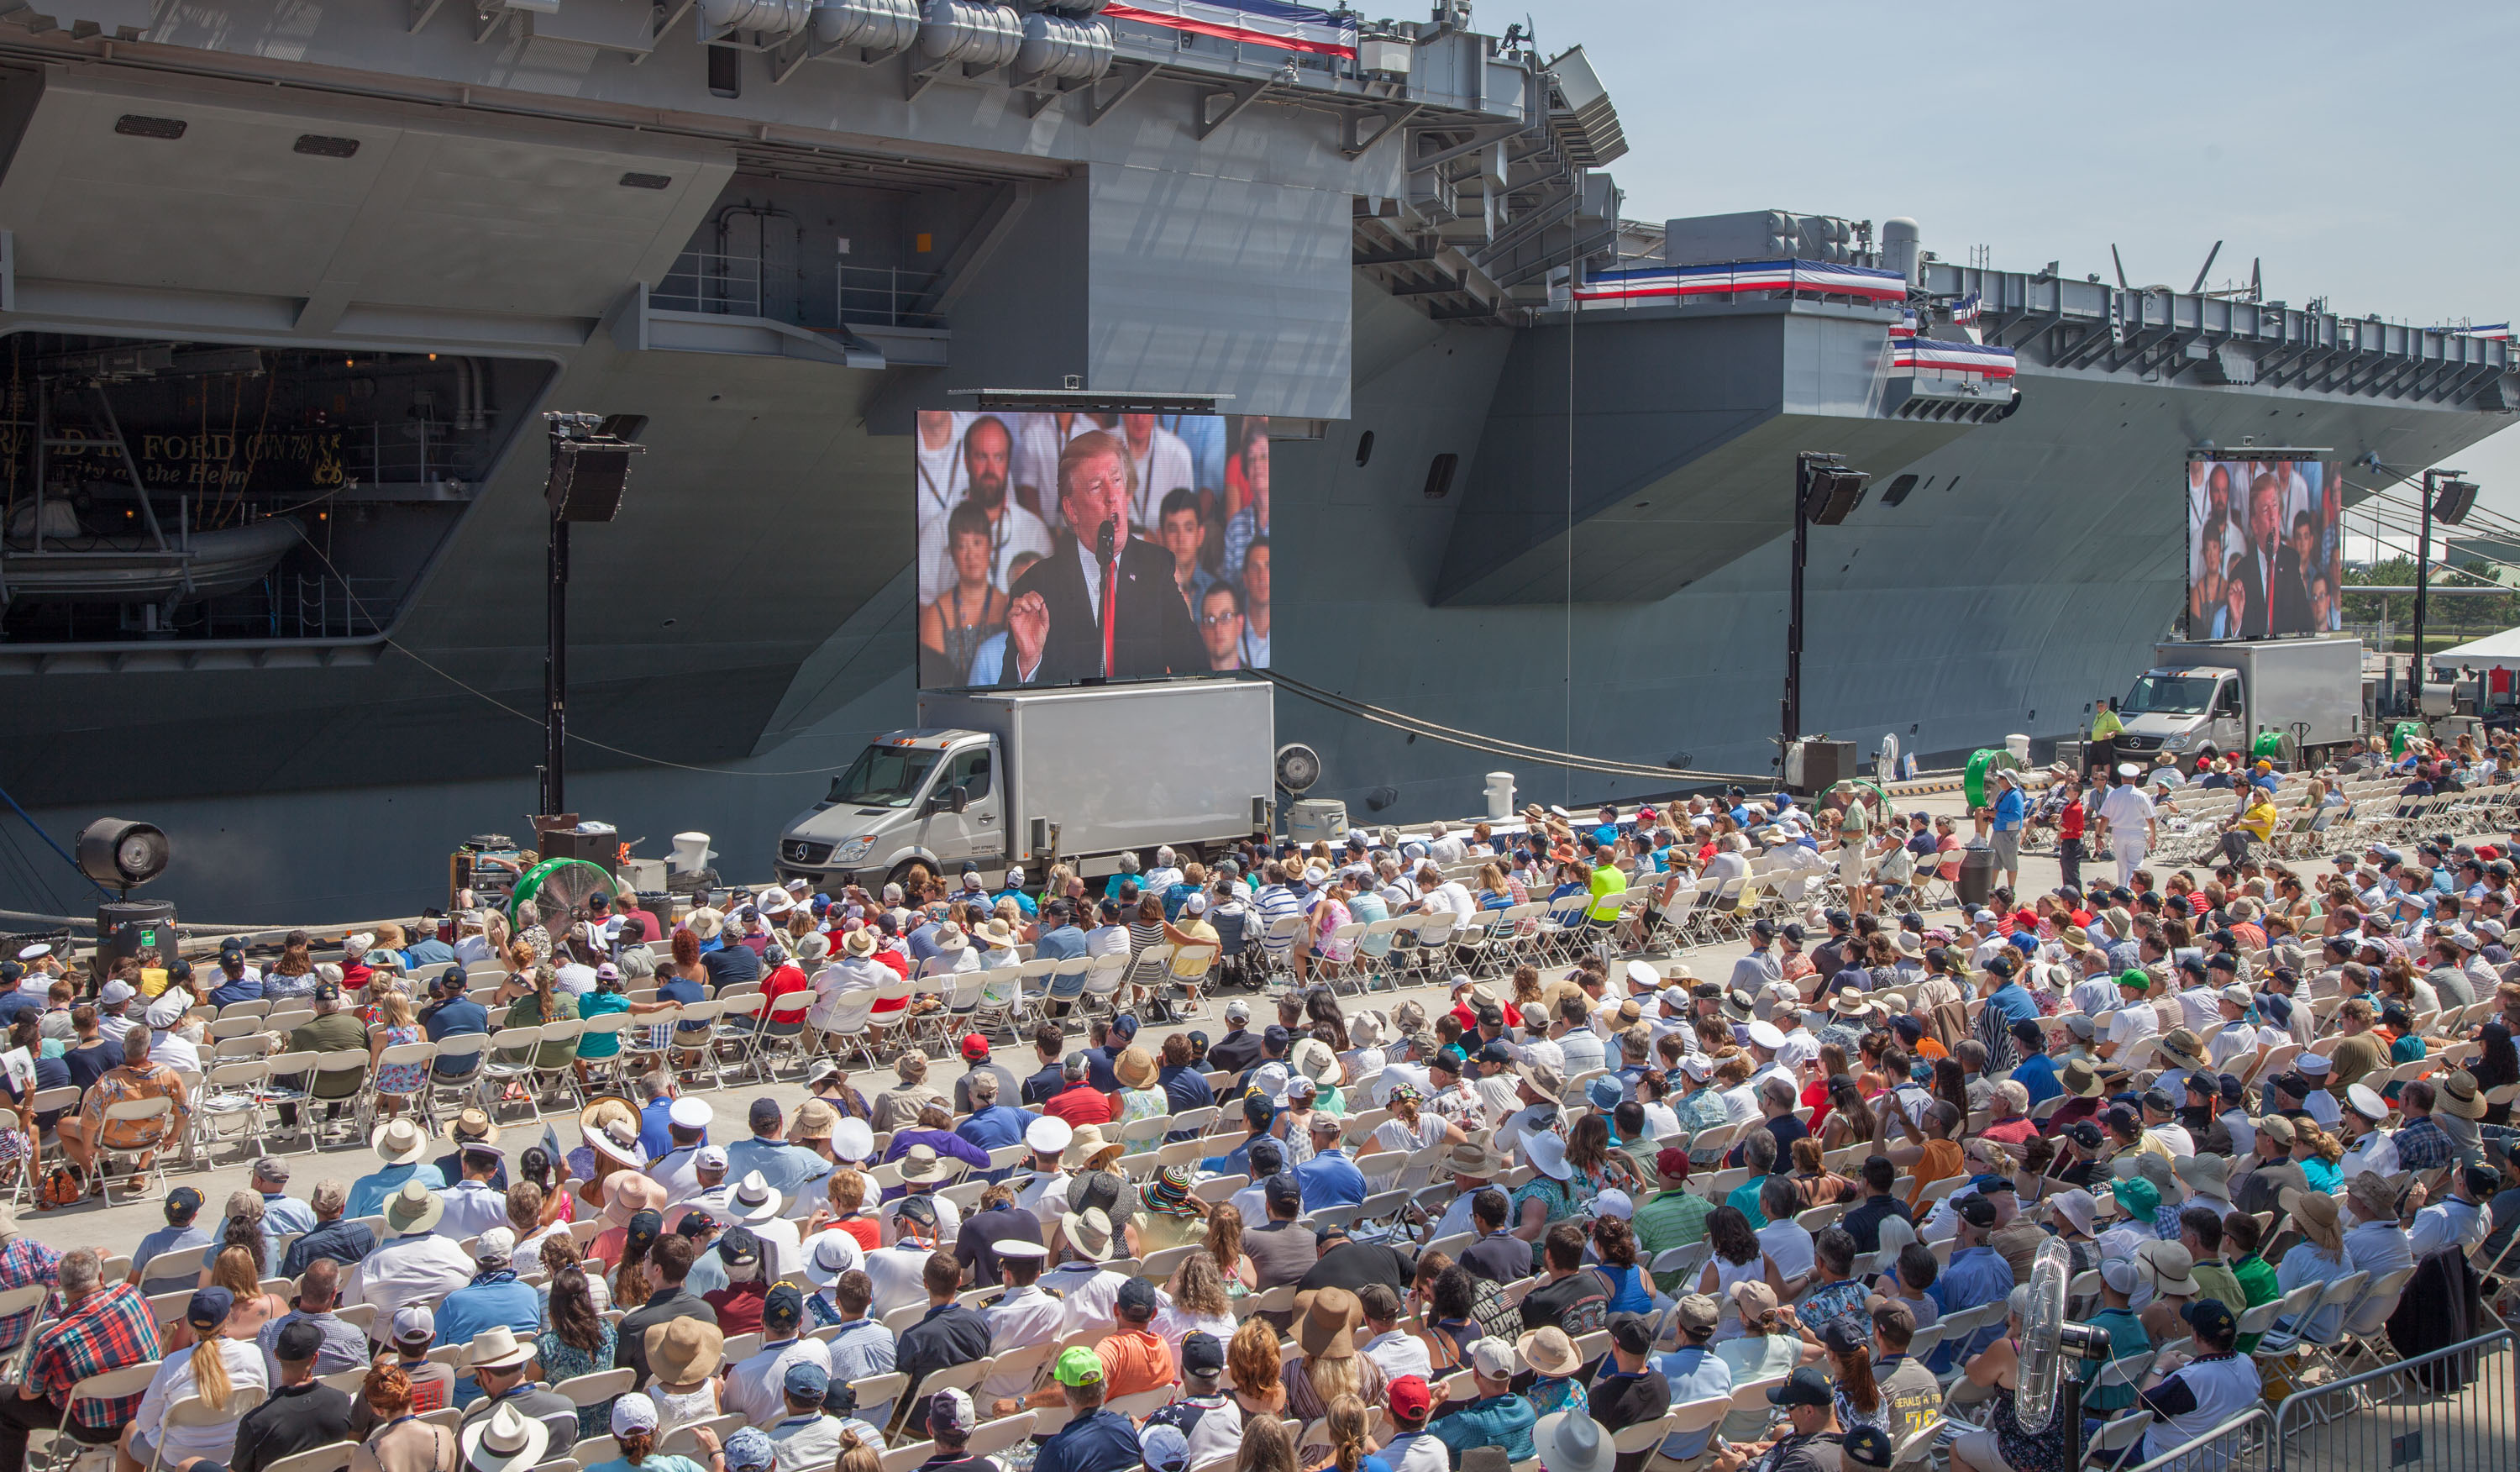 President Donald Trump gives the keynote address at the commissioning of the aircraft carrier Gerald R. Ford and is watched by thousands of spectators on Pier 11 at Norfolk Naval Station.